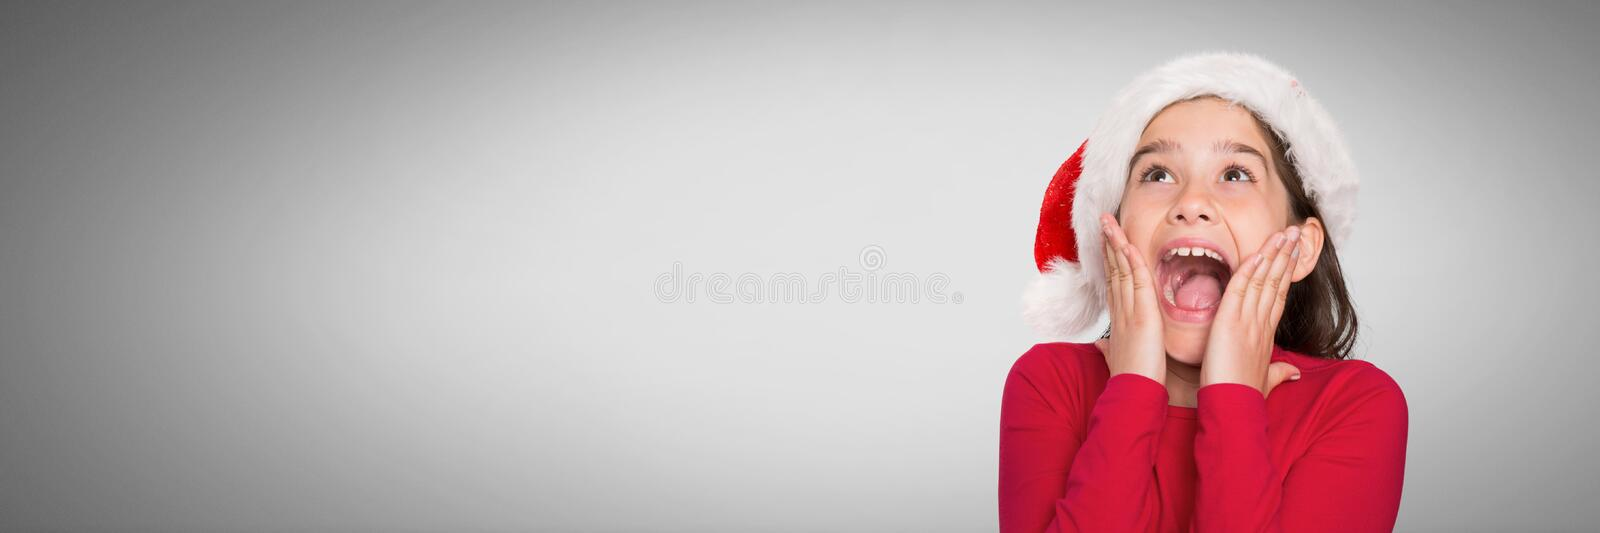 Girl against grey background with Santa hat amazed and surprised looking up stock illustration